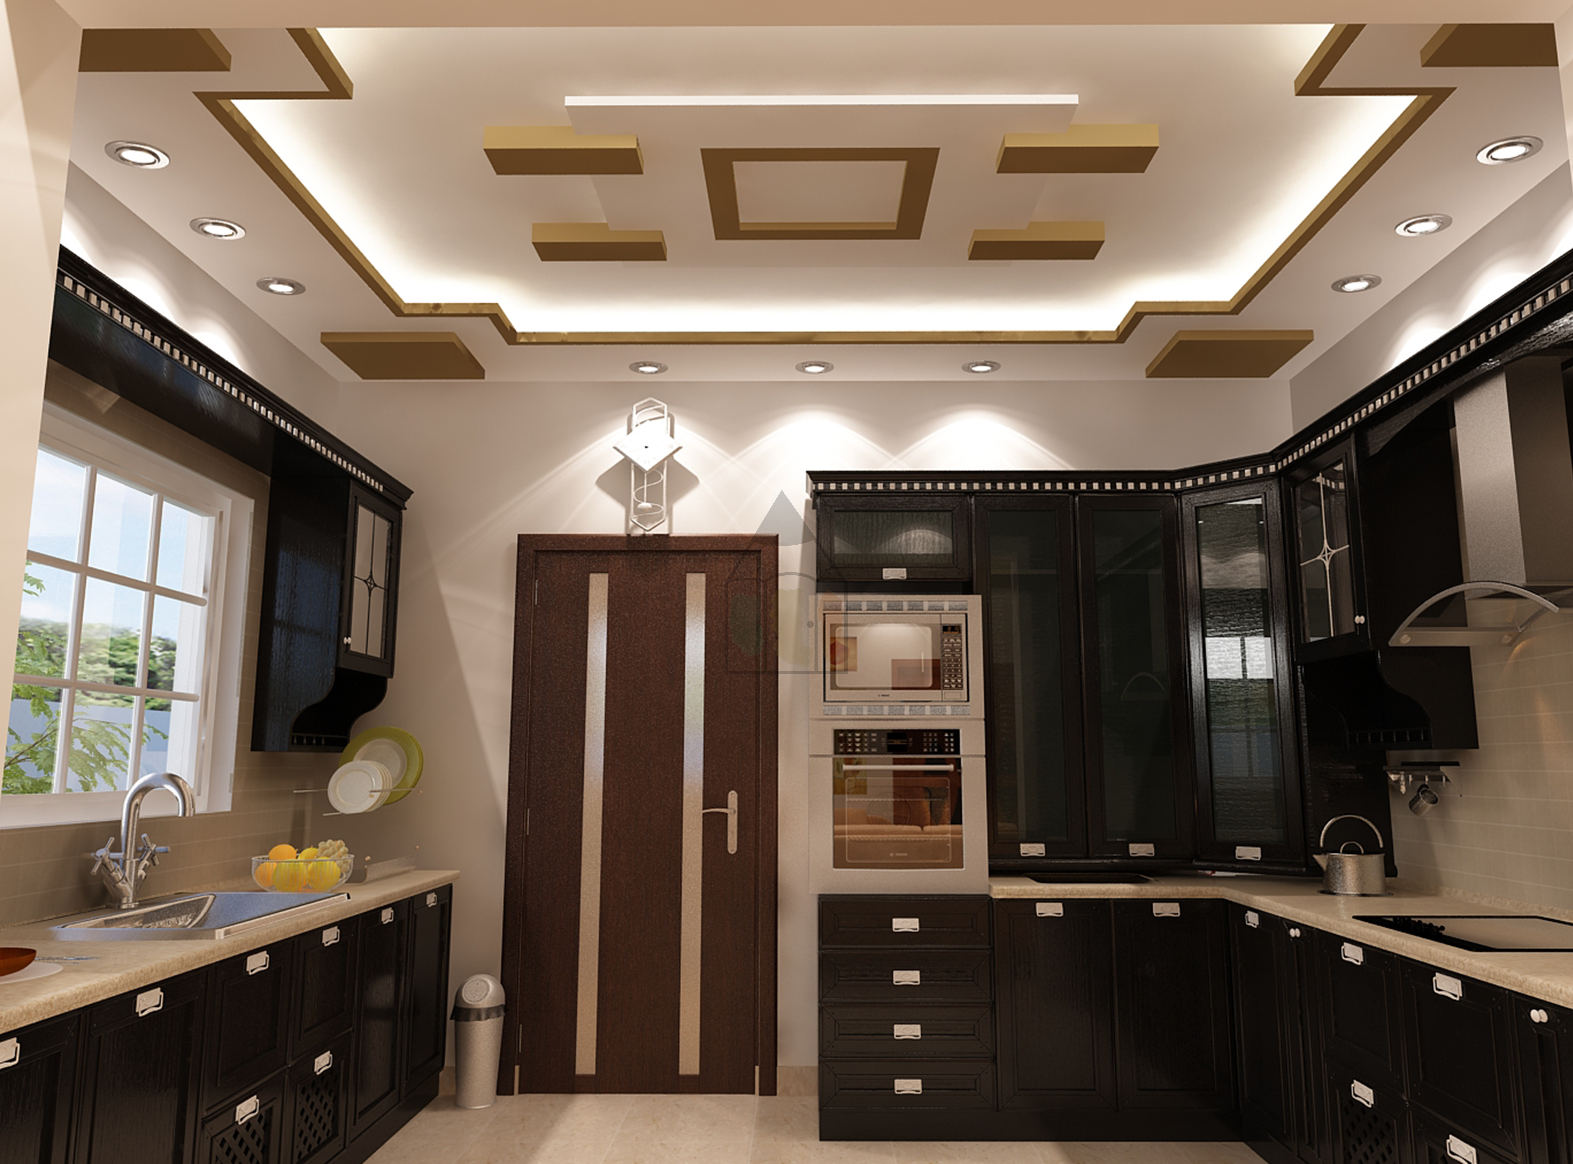 Kitchen Design Pakistan Of Pakistani Kitchen Design Kitchen Design Pinterest